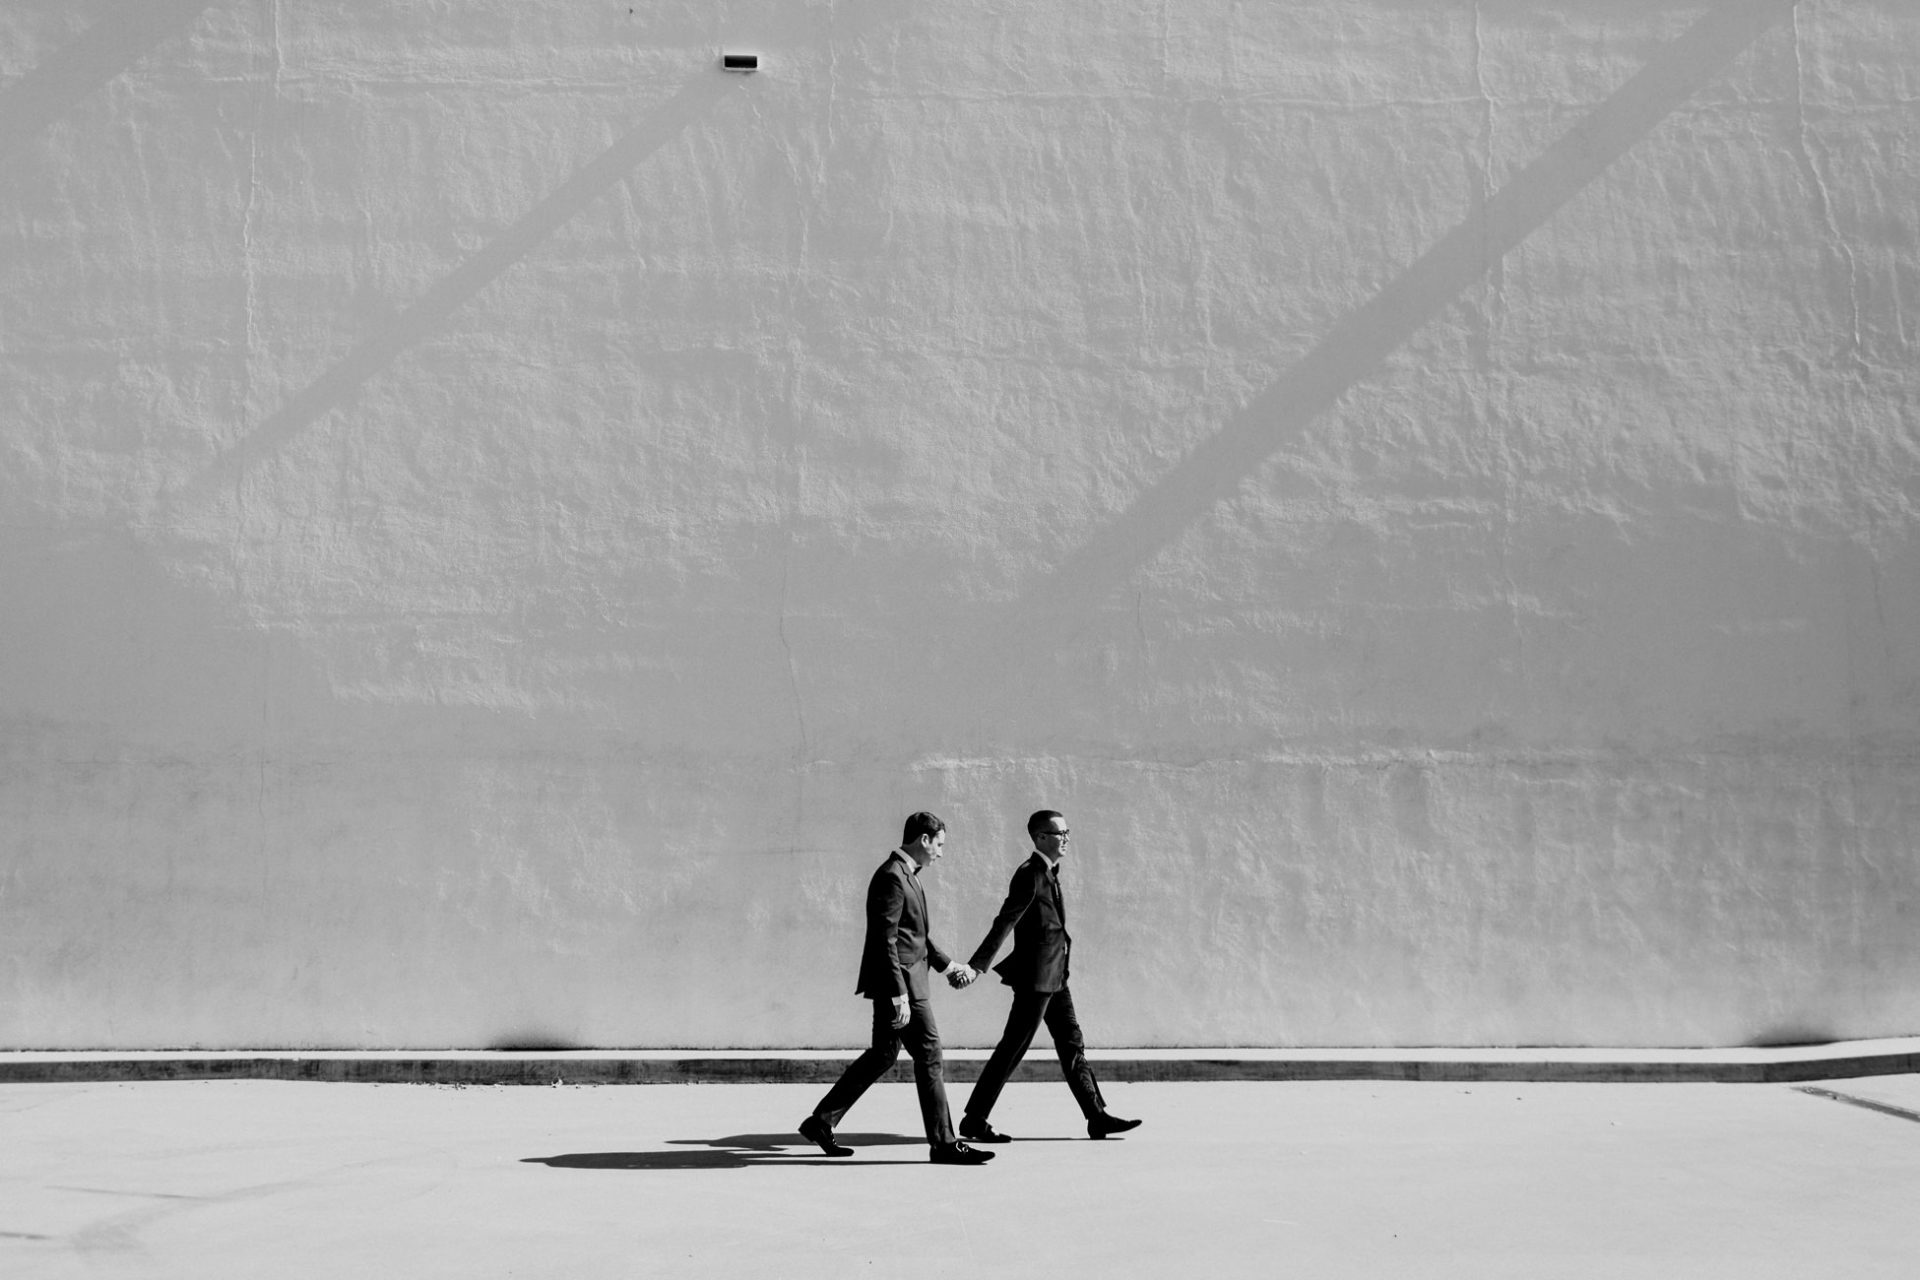 best-top-los-angeles-destination-wedding-photographer-hipster-modern-quirky-editorial-romantic-epic-19-history-museum-minimal-same-sex-grooms